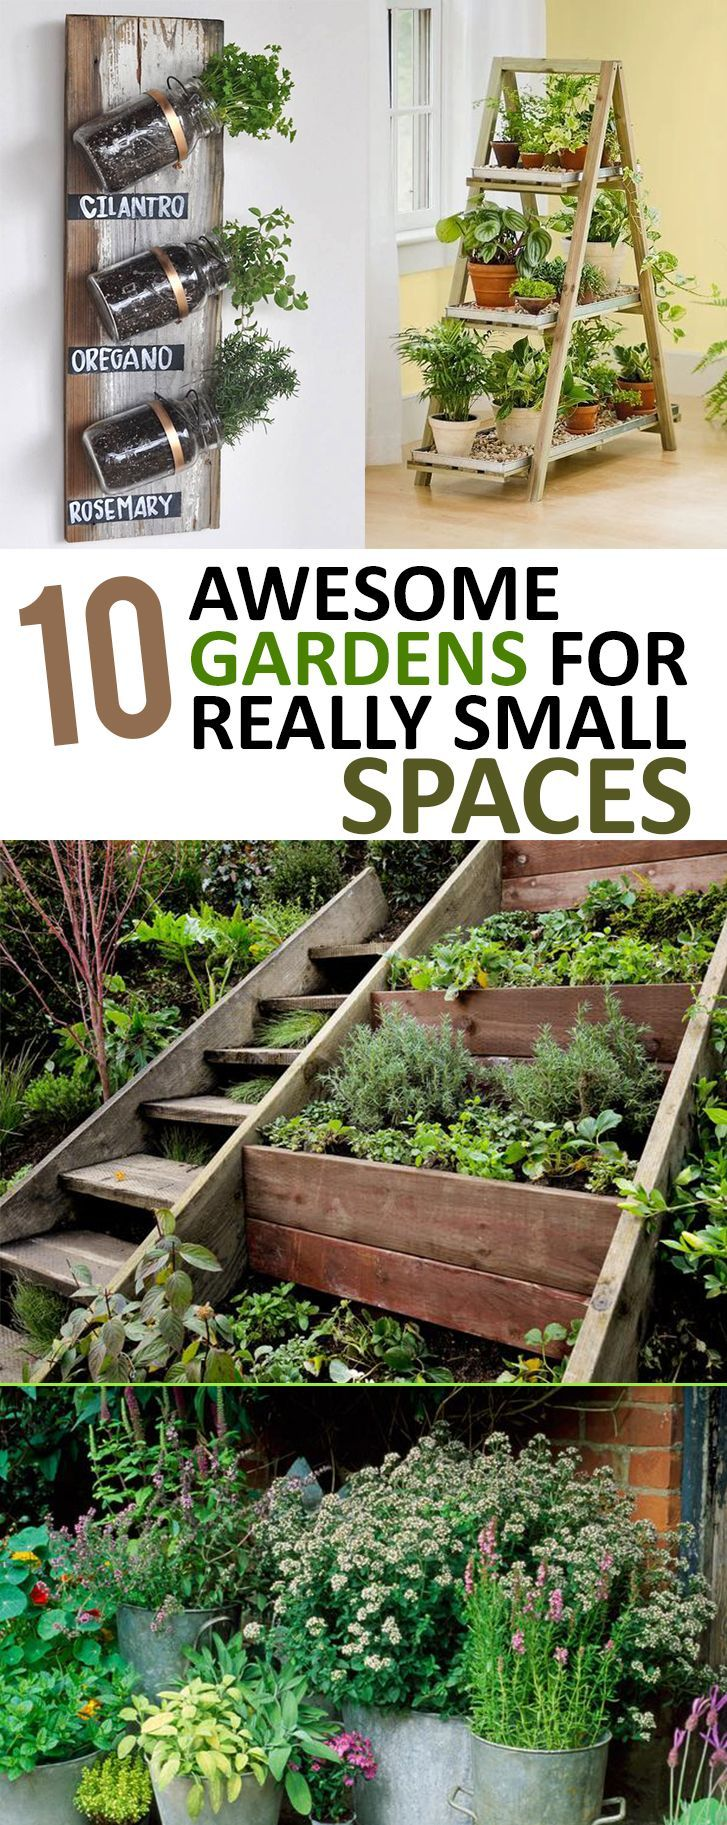 Small Space Garden Ideas small garden big ideas filed under small spaces designer Best 25 Small Gardens Ideas On Pinterest